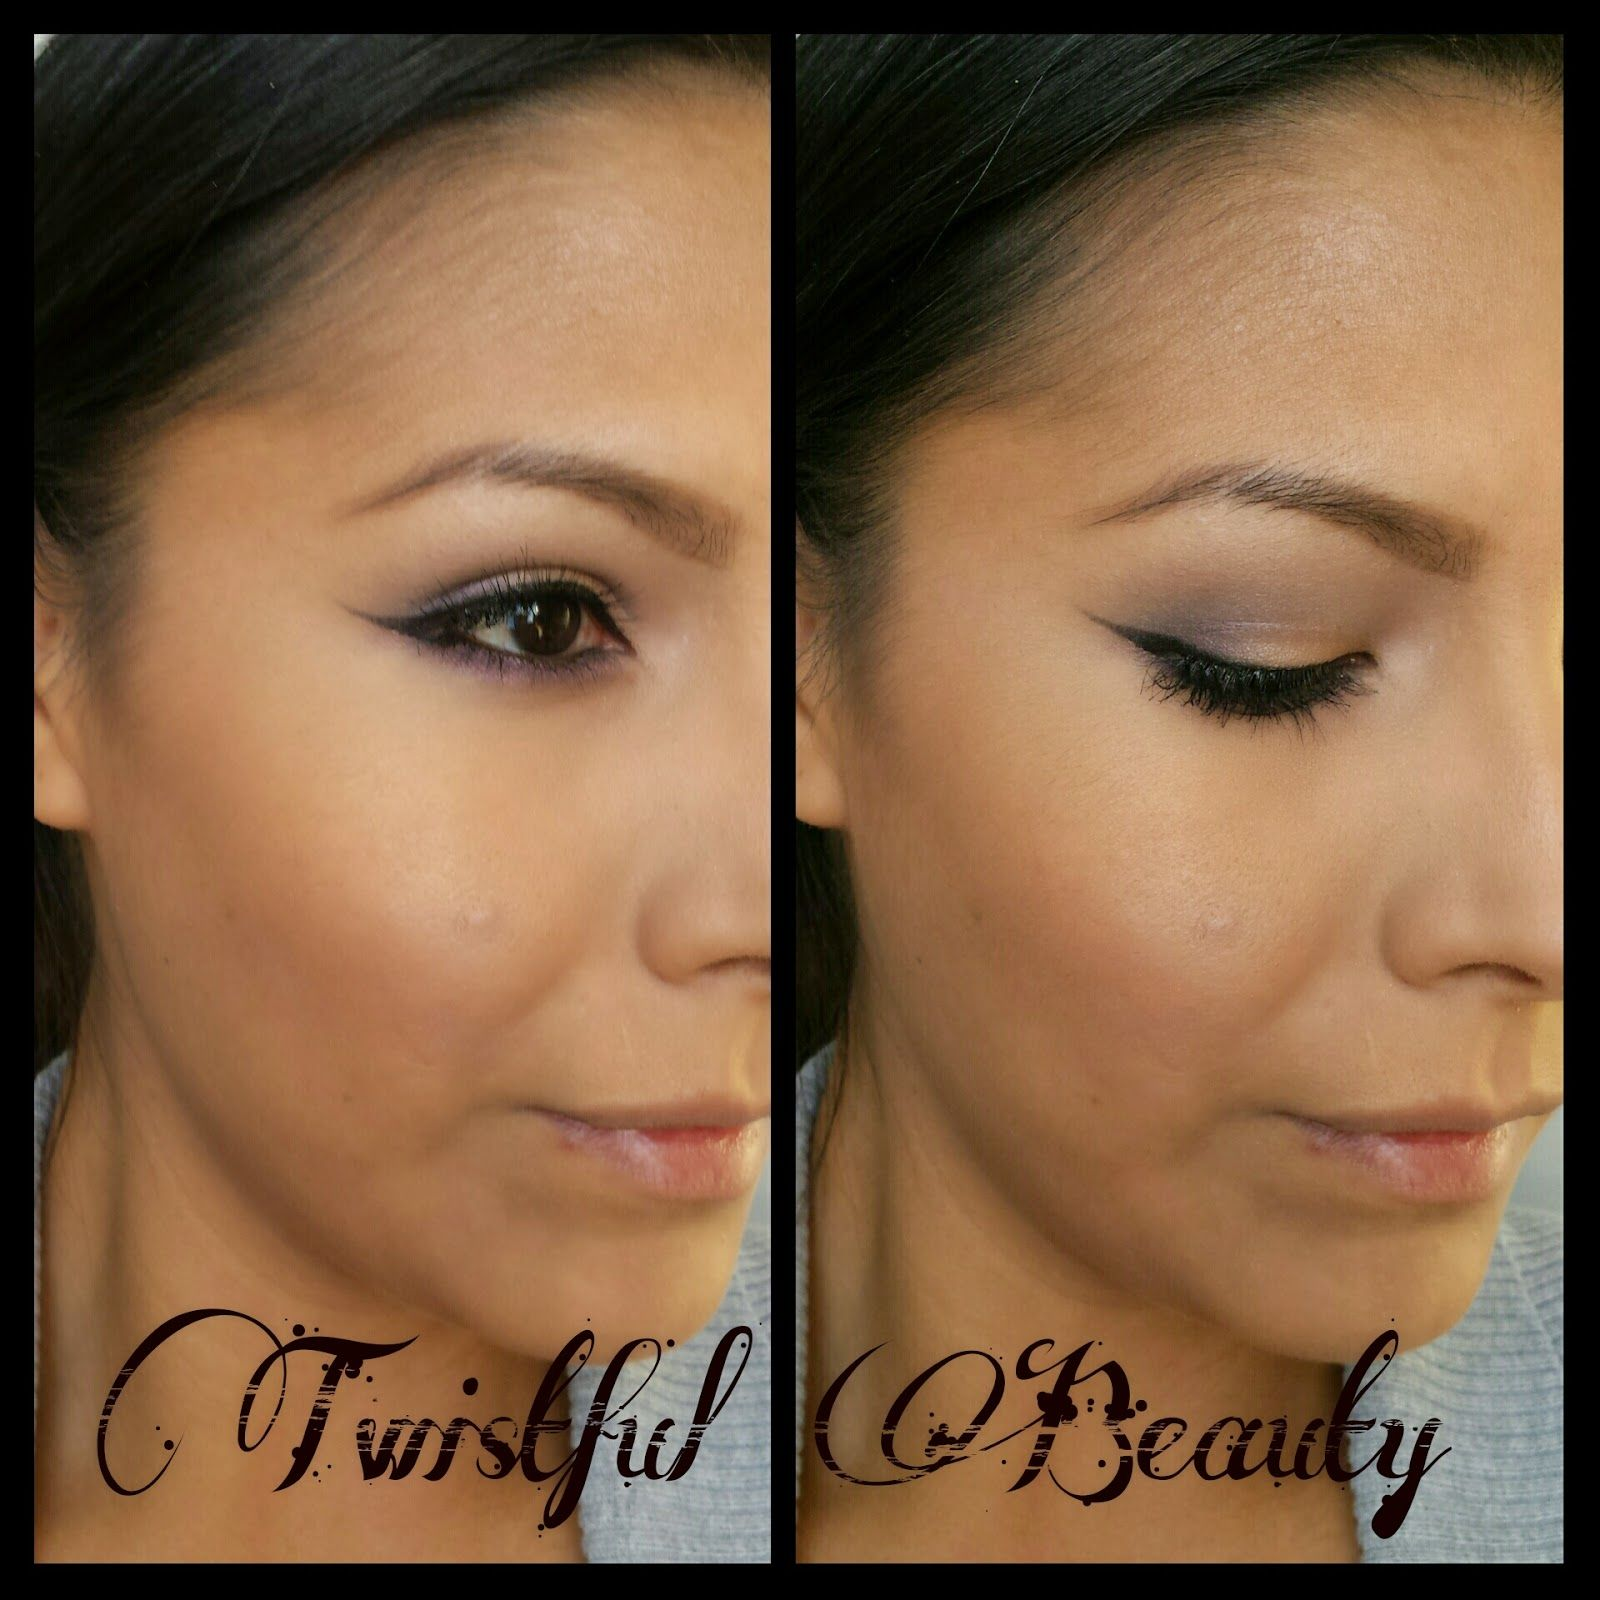 Twistful Beauty- Neutral Look using Candii Blossom Cosmetics